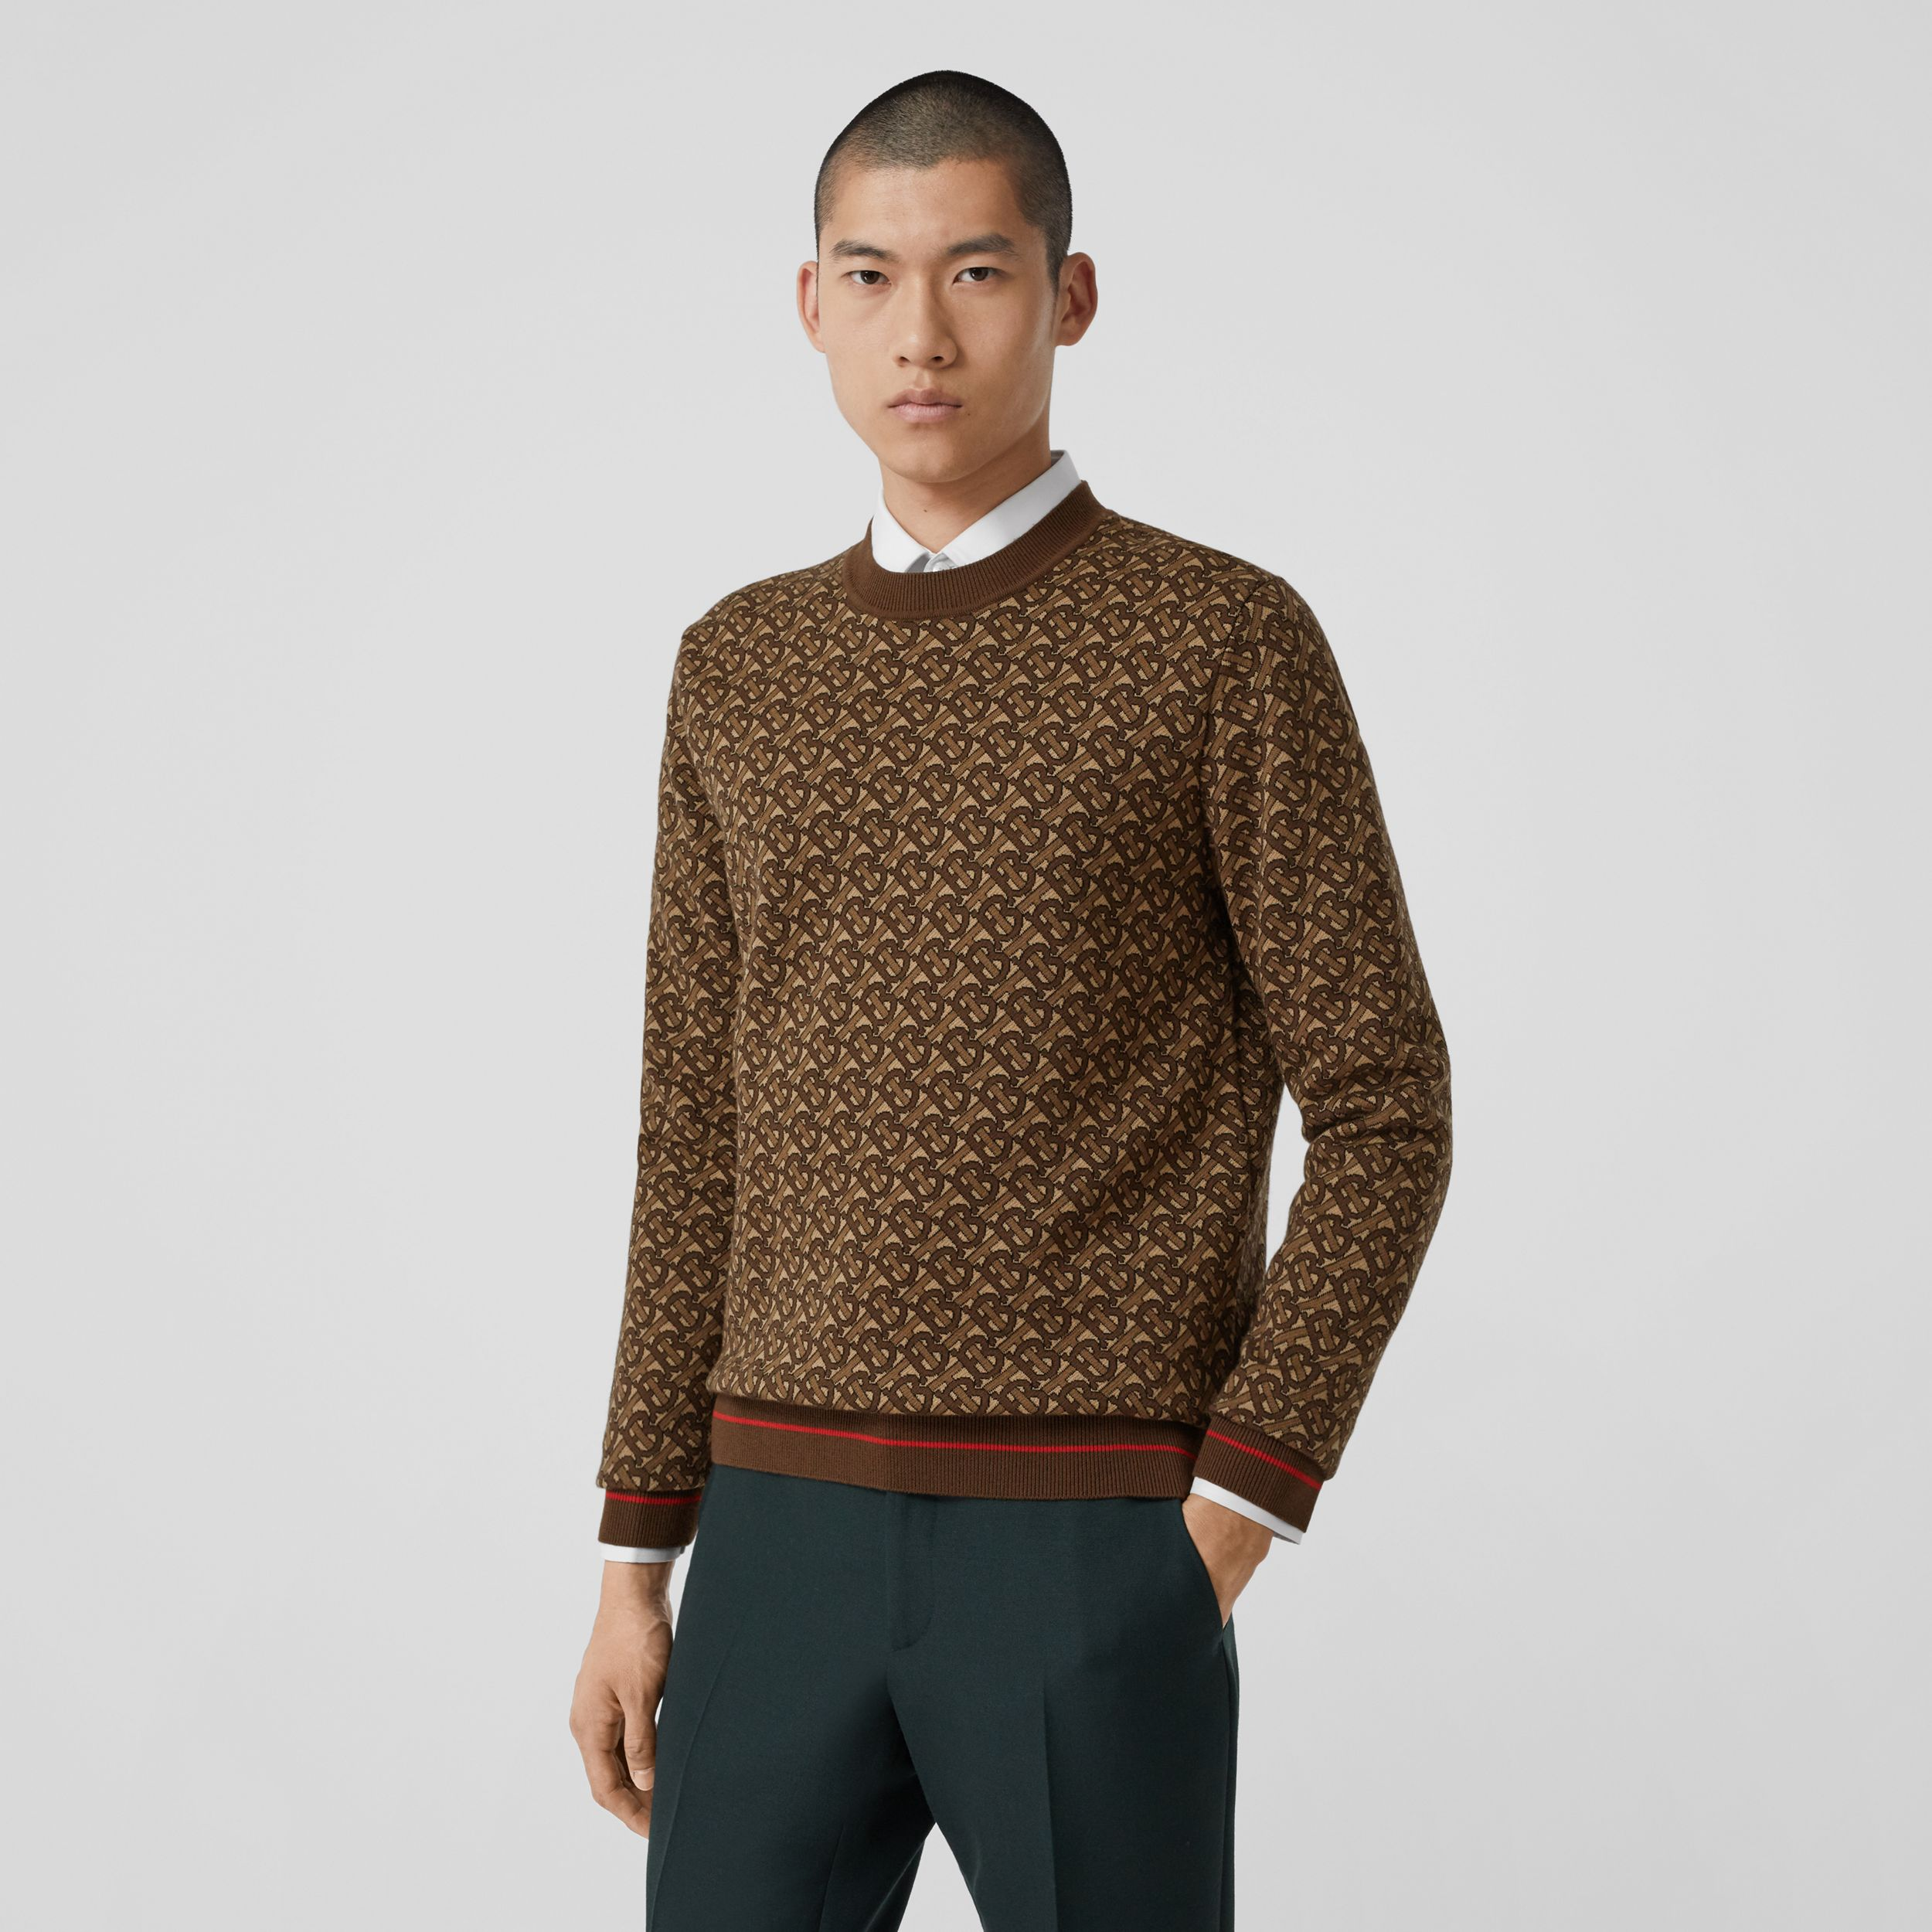 Monogram Merino Wool Jacquard Sweater in Bridle Brown - Men | Burberry - 1